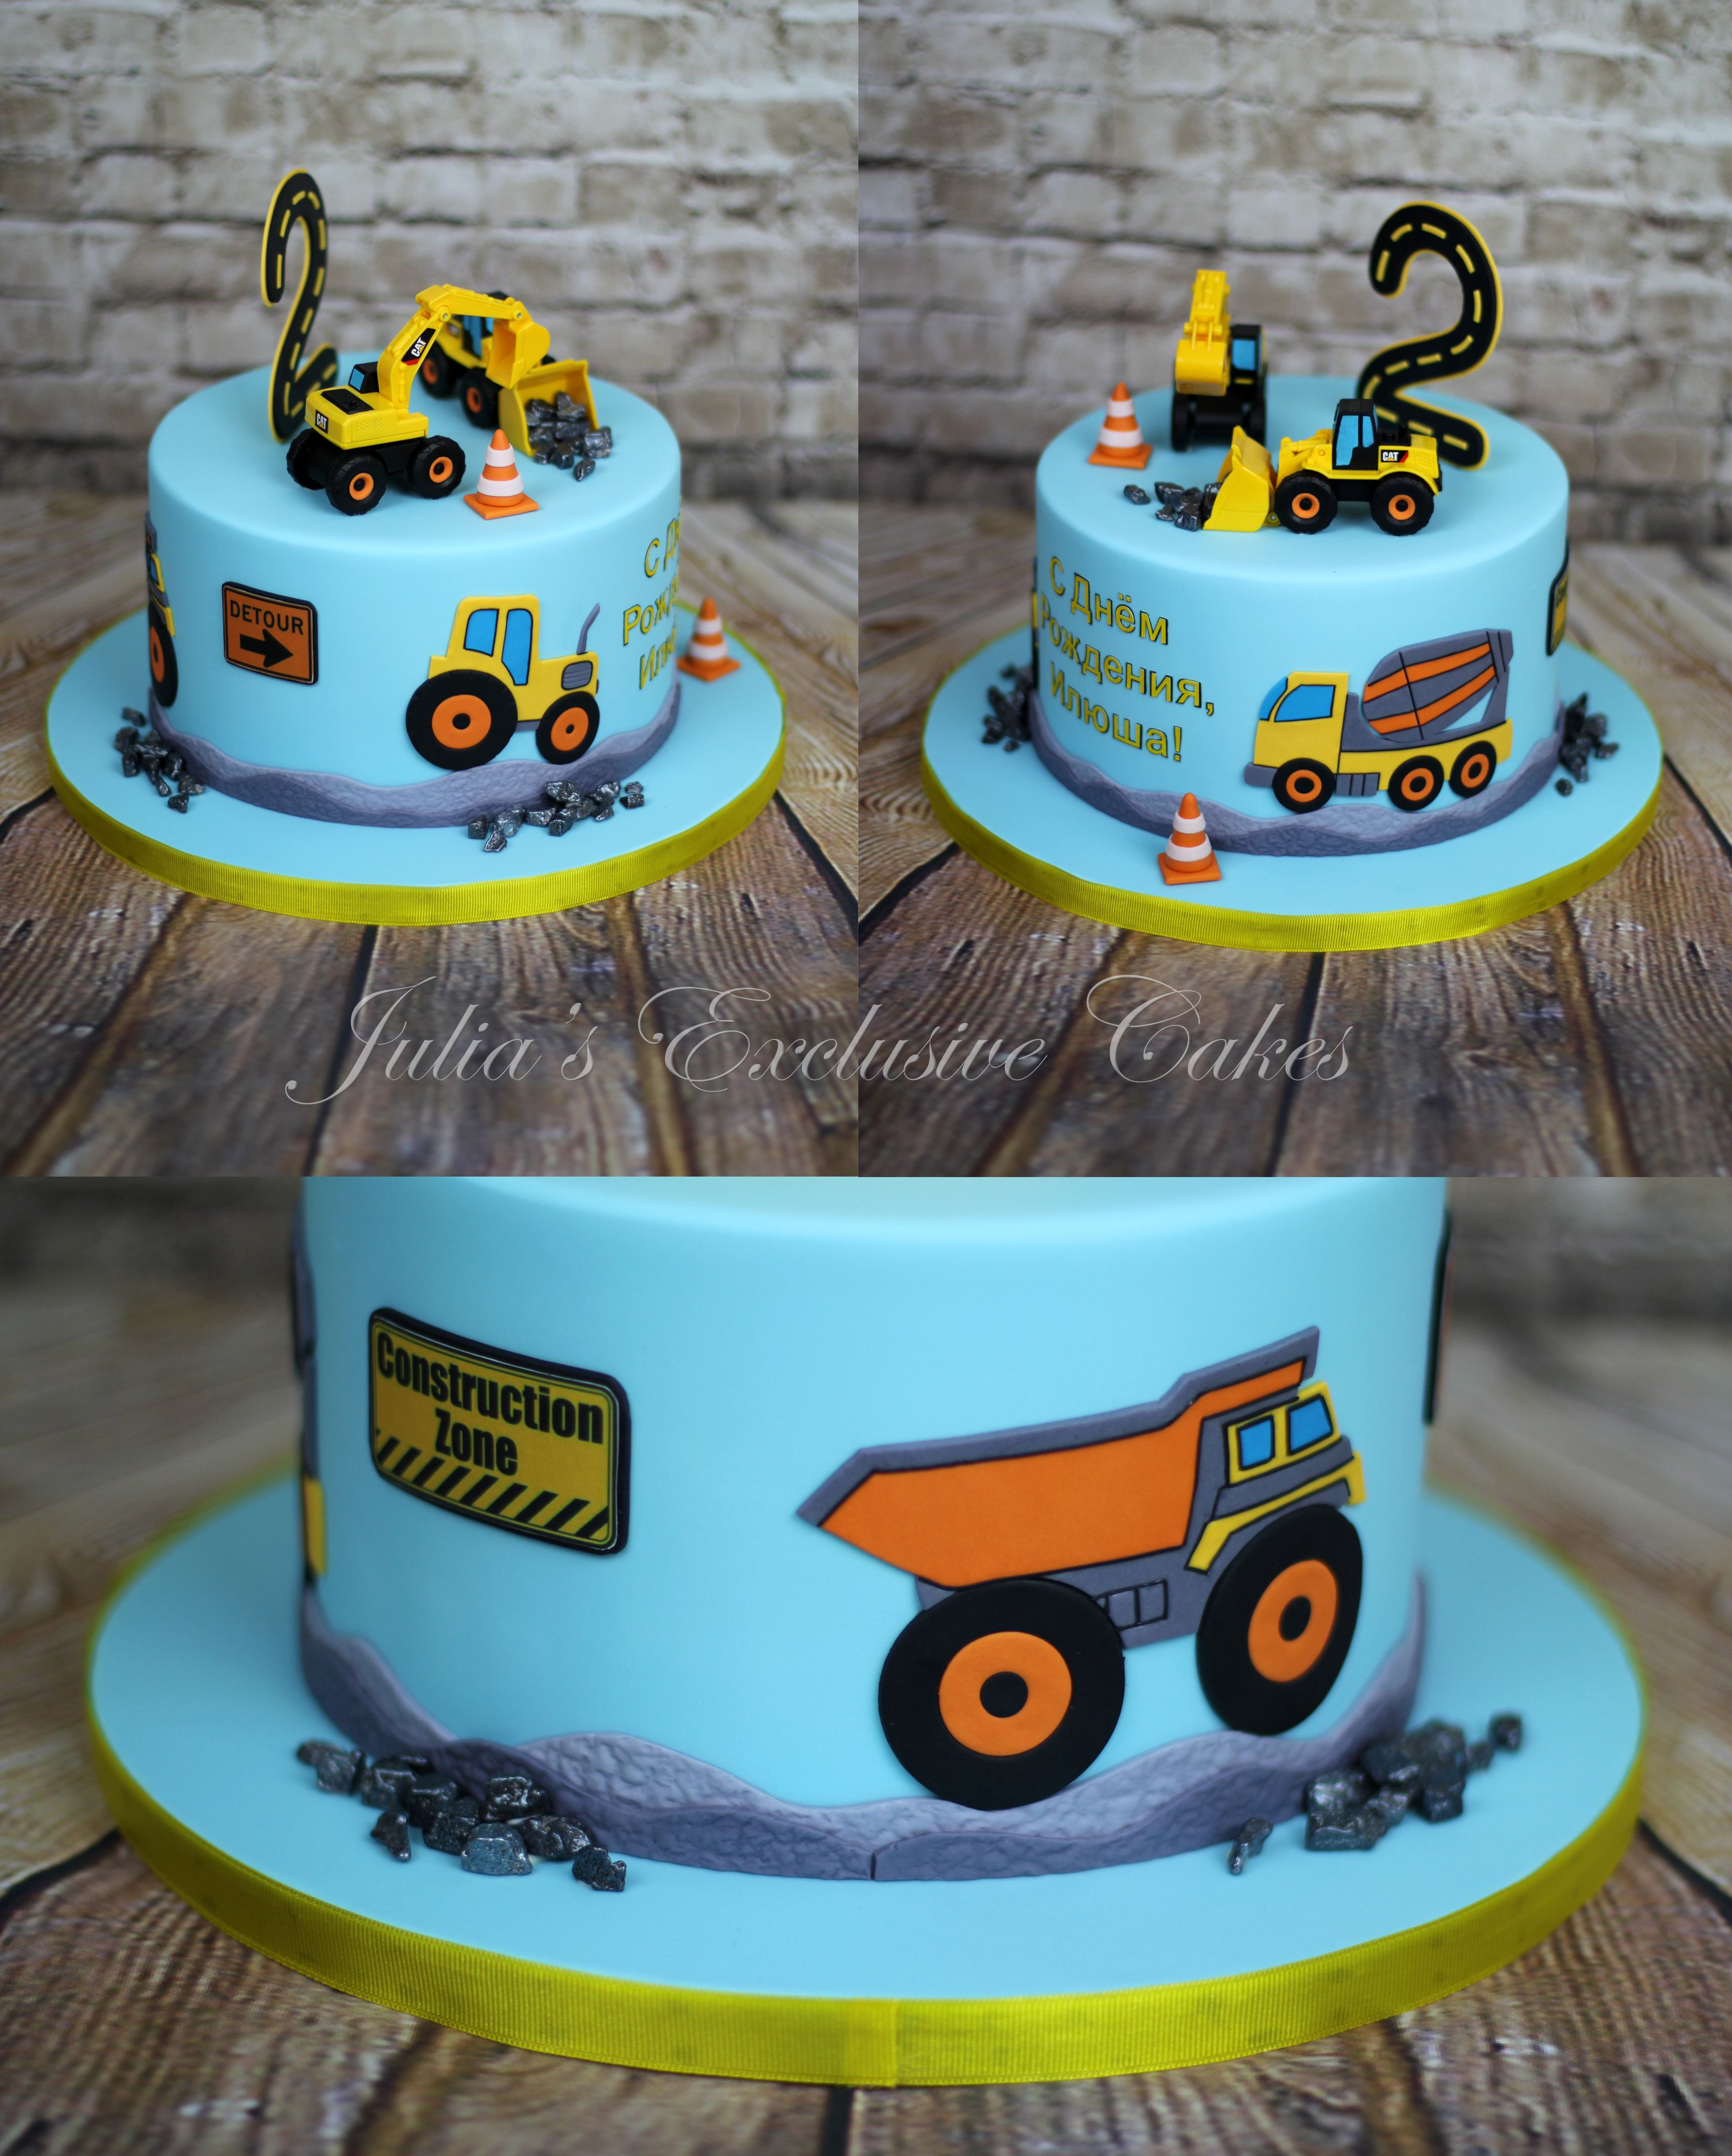 Construction Themed Birthday Cake For A Little Boy Cars On The Top Are Real Toys